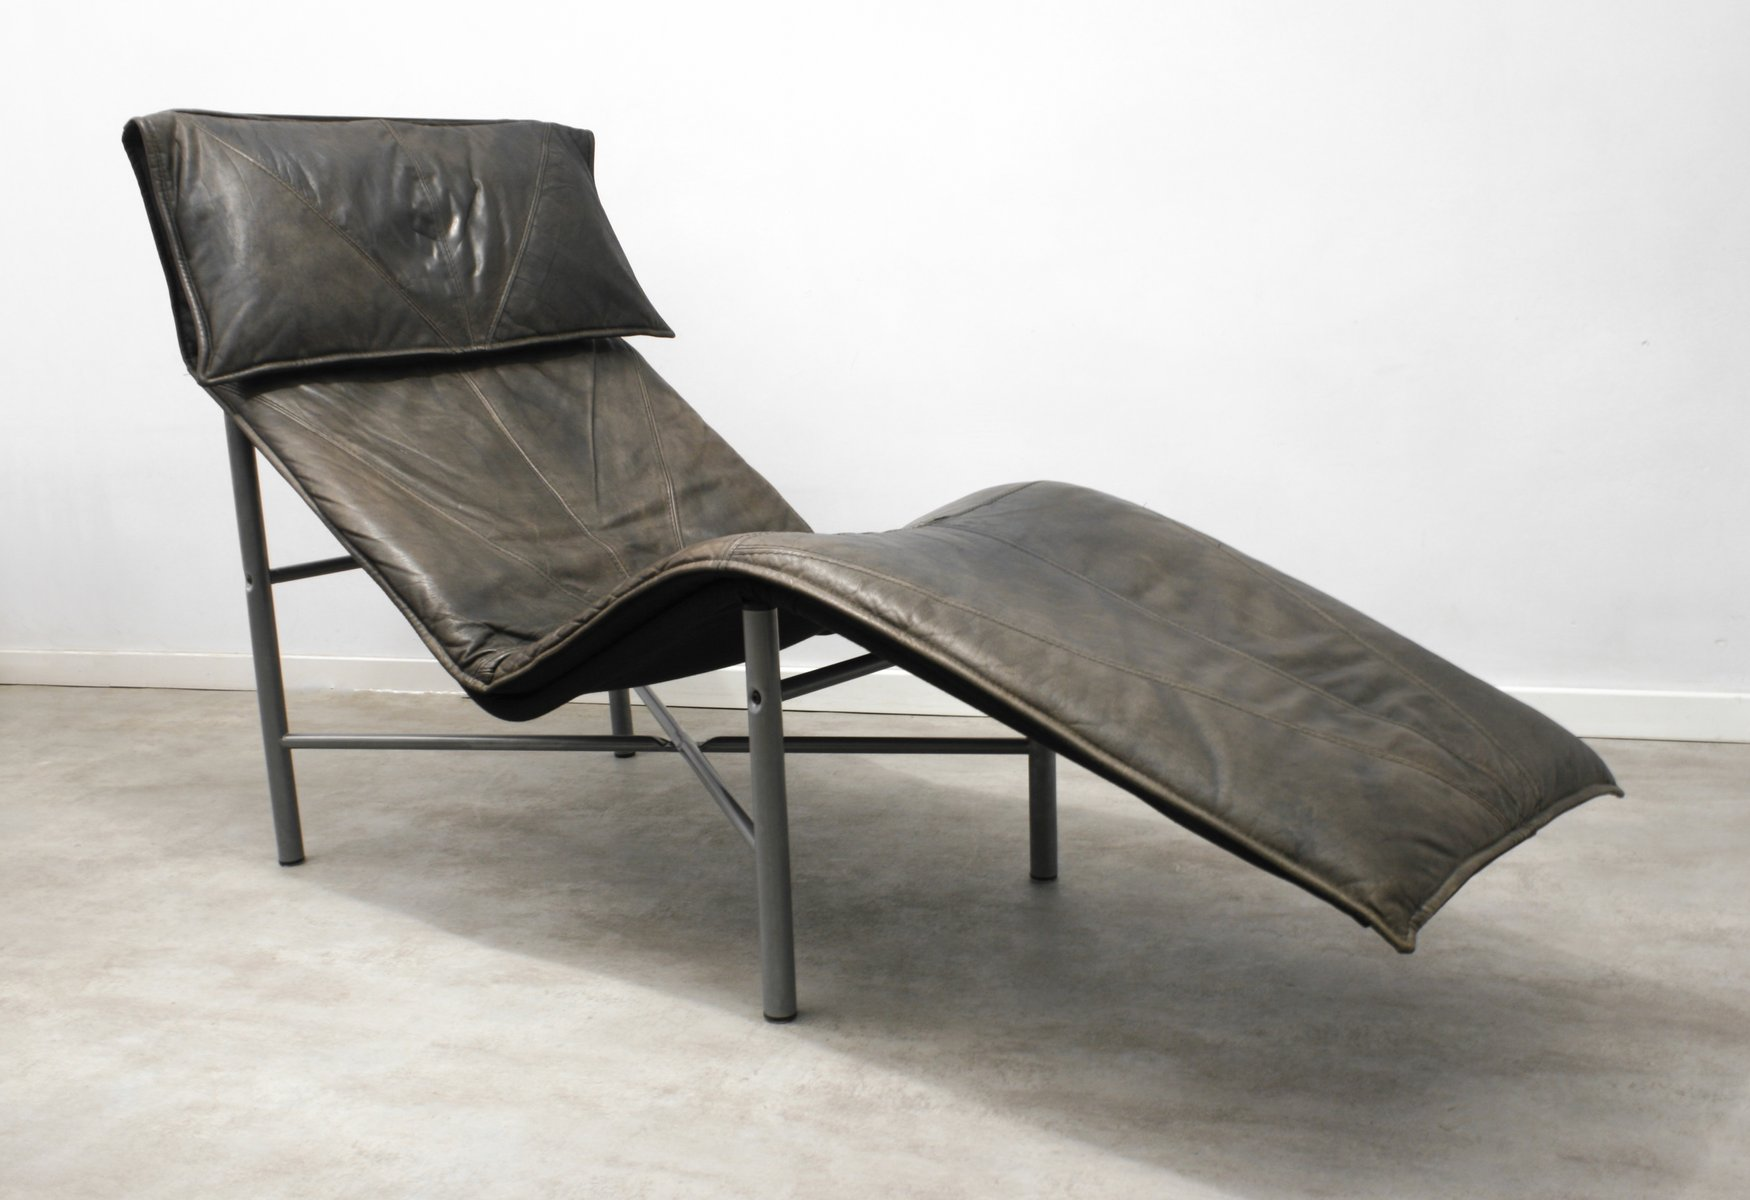 Chaise A Ikea Brown Leather Skye Chaise Lounge By Tord Björklund For